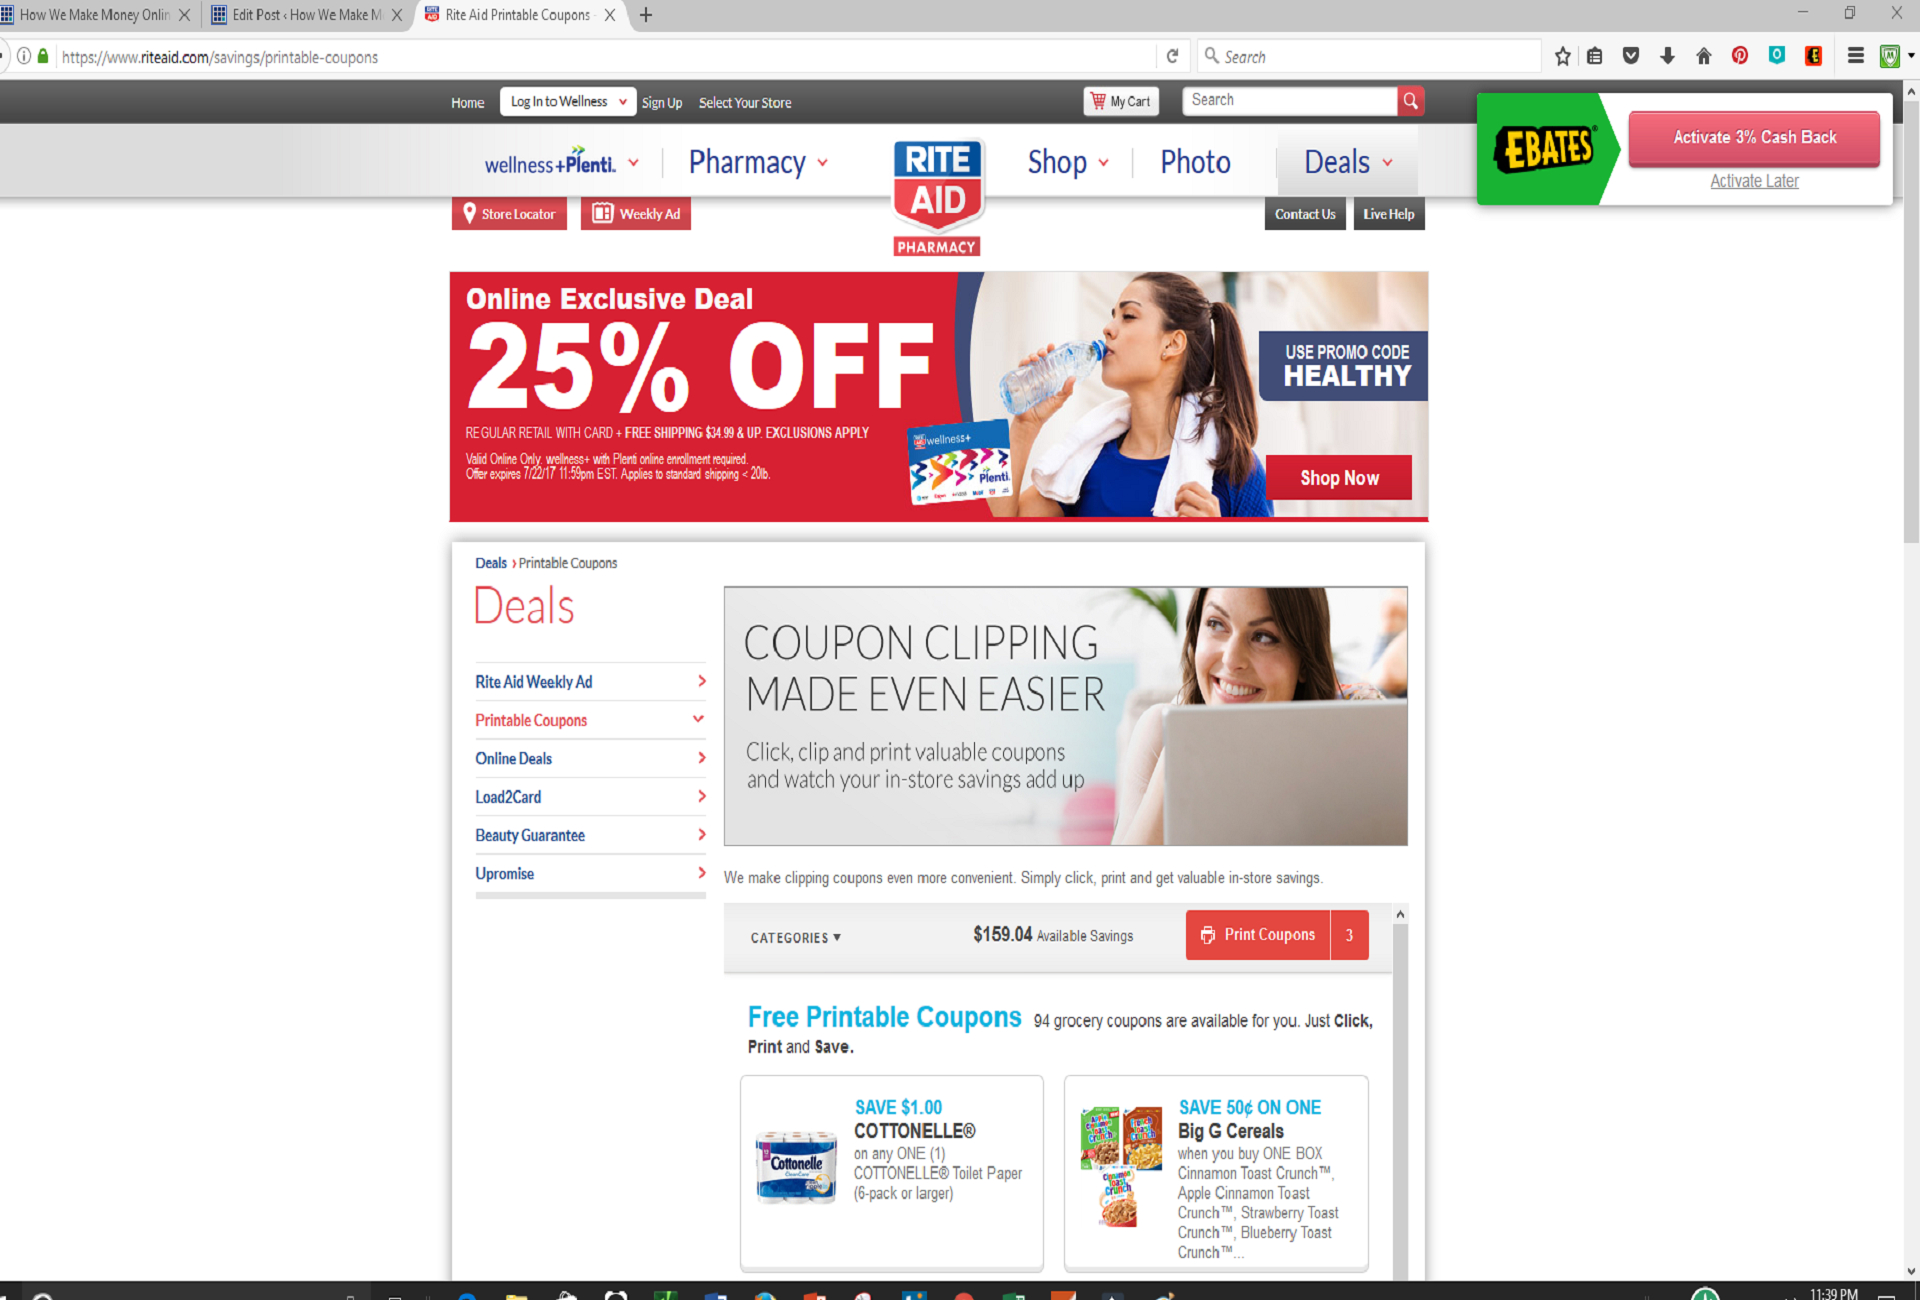 Coupons Websites With Biggest Discounts And Hot Deals In 2019 - Free Printable Coupon Websites